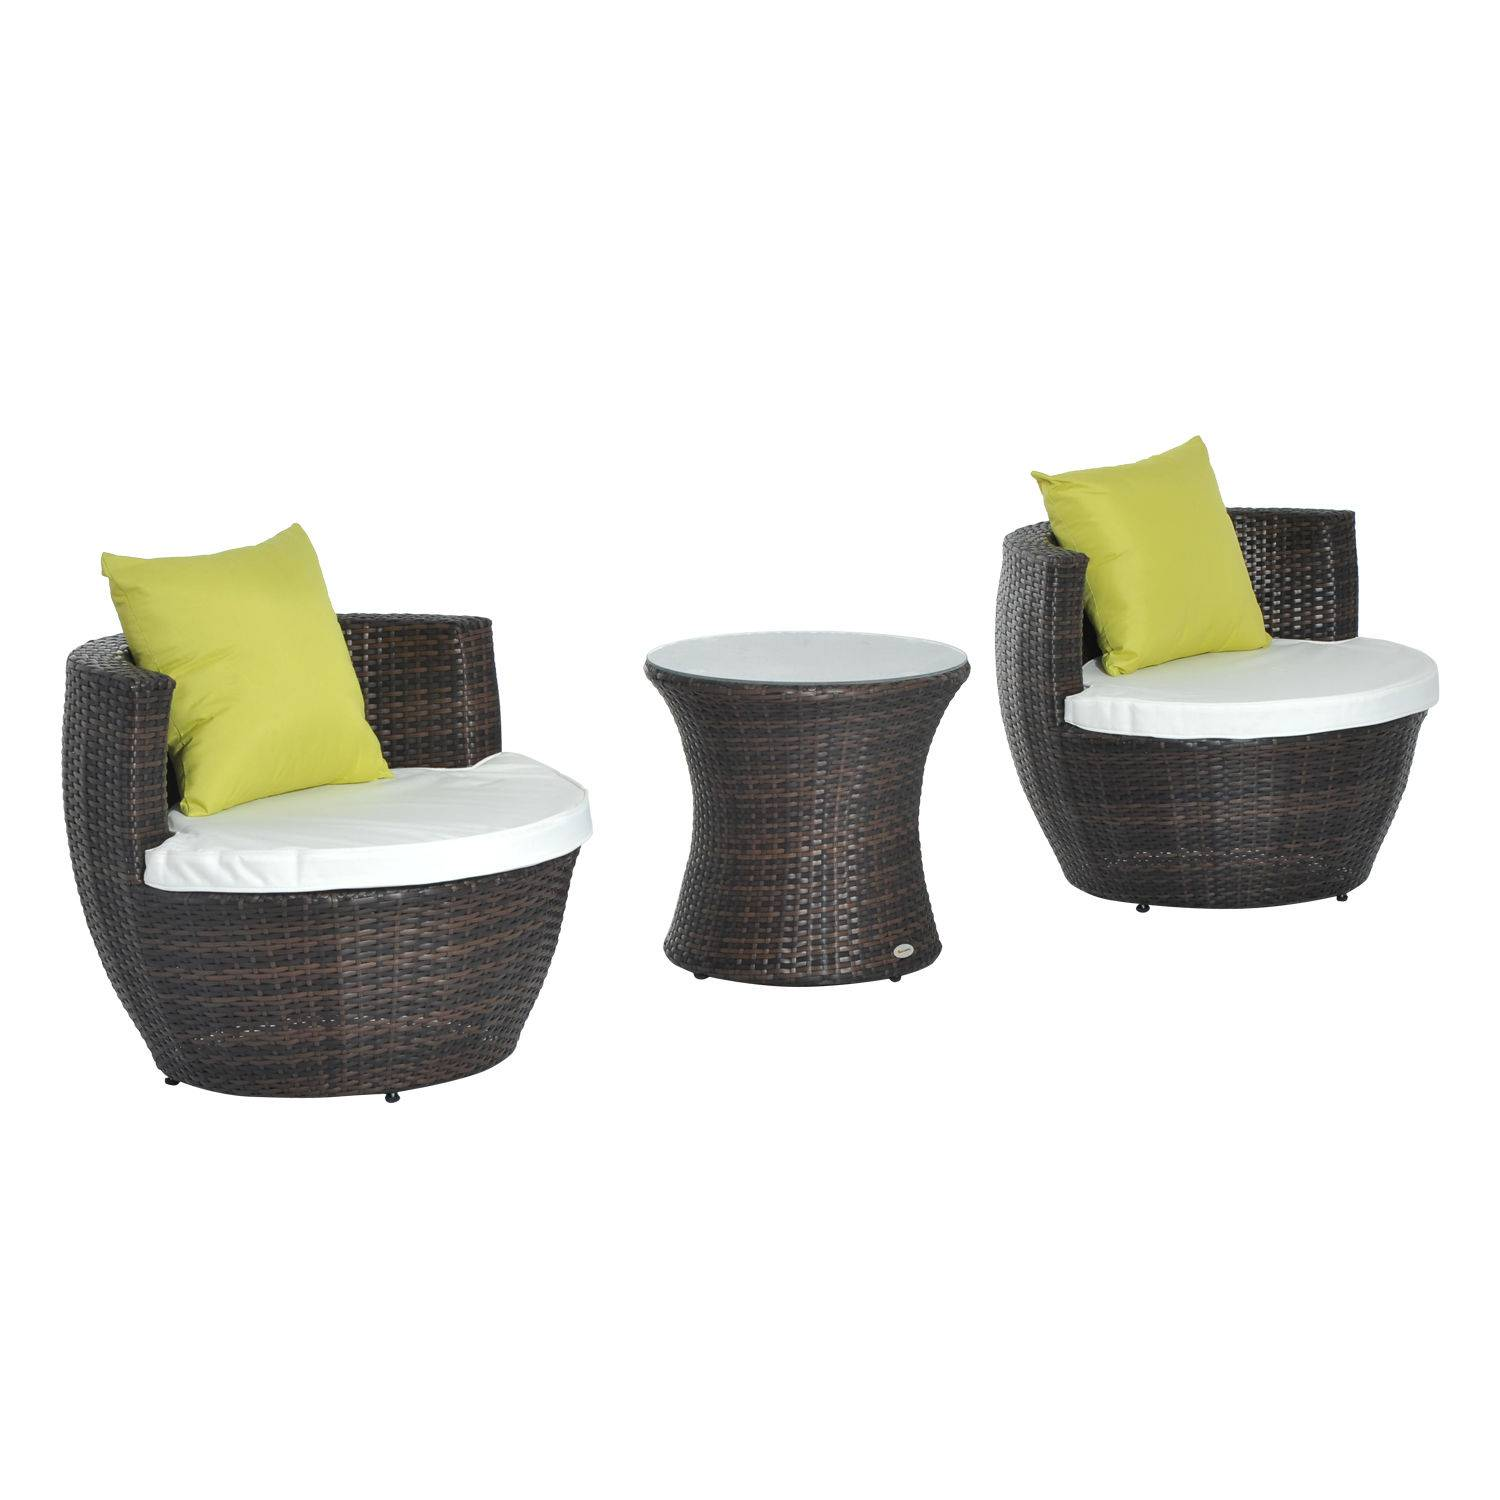 Outsunny 3Pc Garden Rattan Vase Chair Set: 1 x Table, 2 x Chair-Green